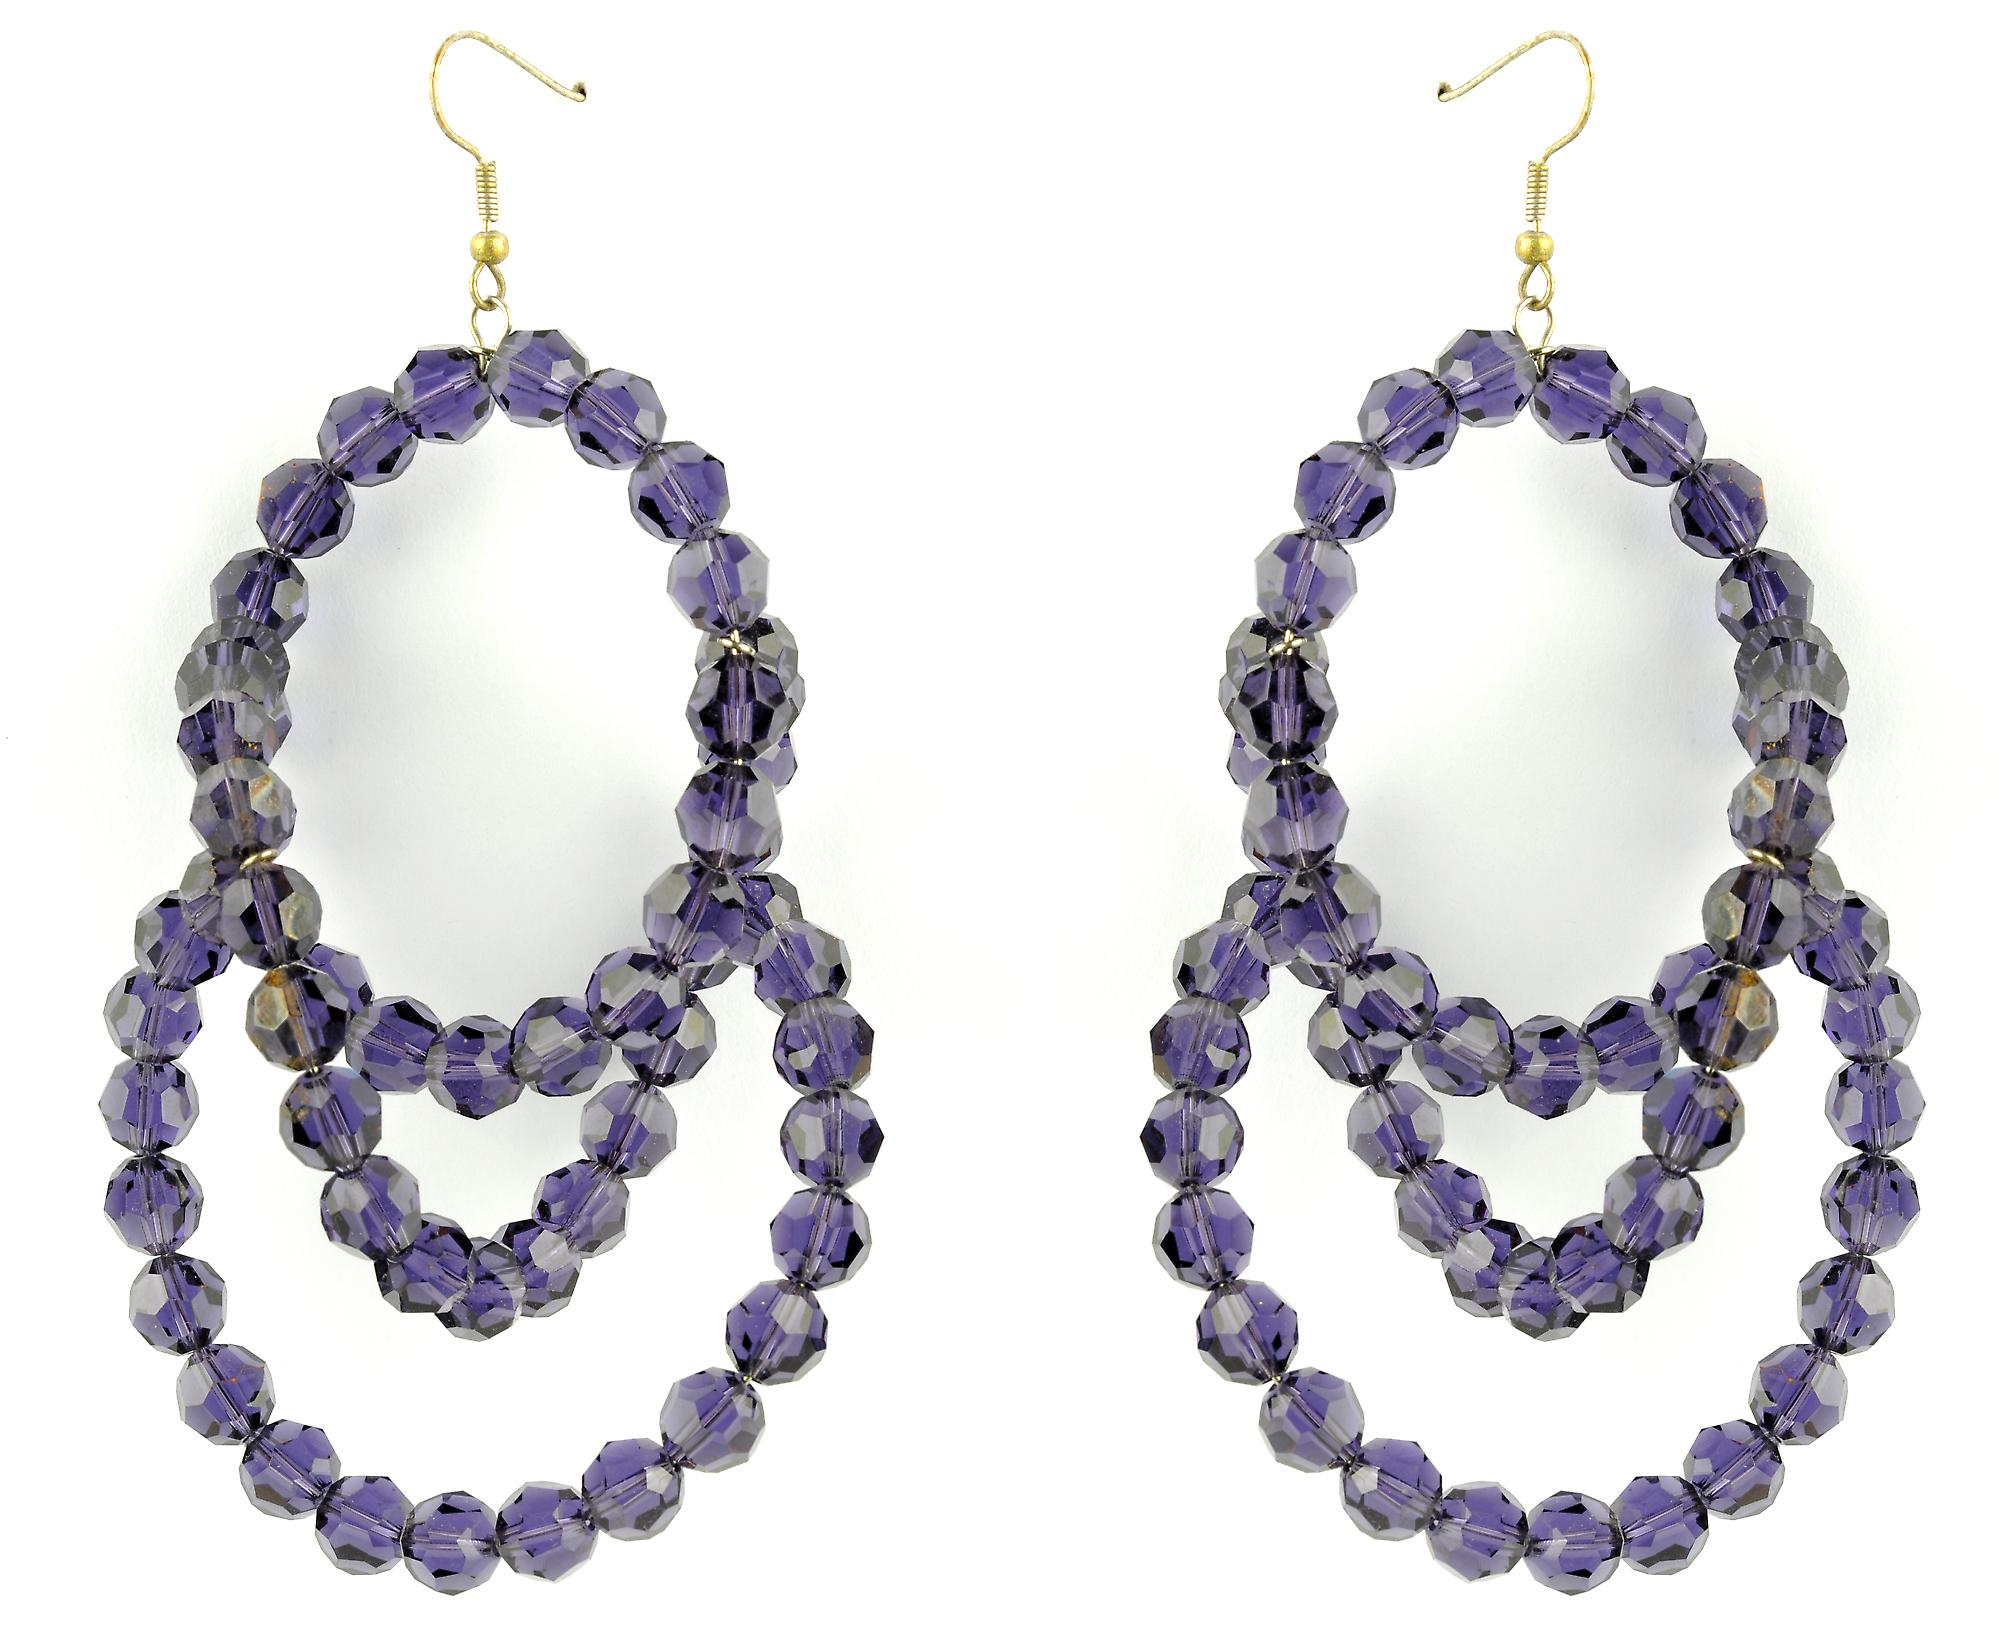 Waooh - Jewellery - WJ0760 - earrings with Swarovski Strass Violet Transparent - Frame Color Gold